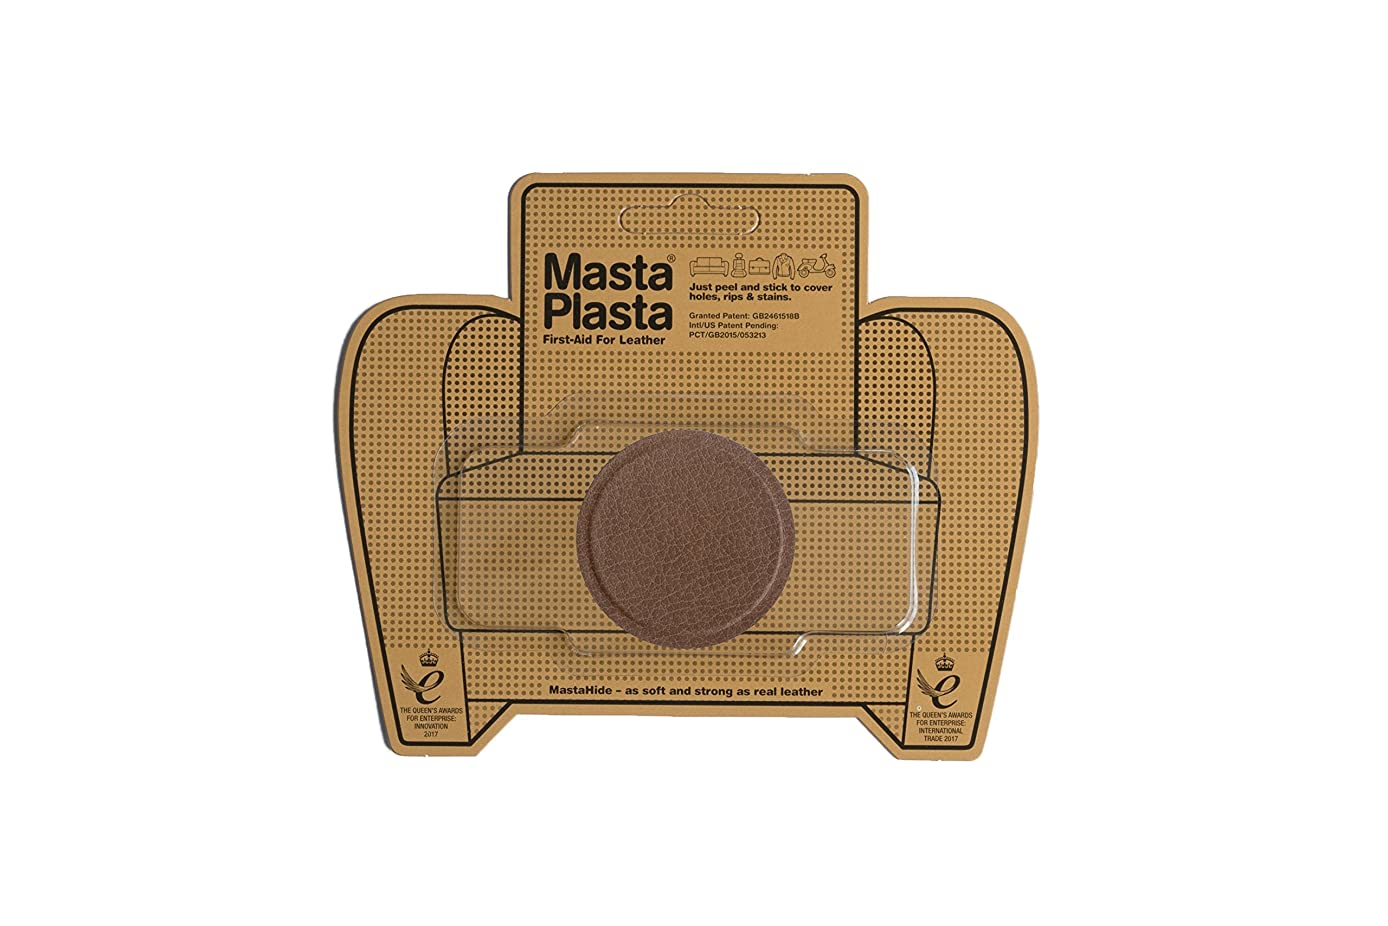 MastaPlasta Self-Adhesive Patch for Leather and Vinyl Repair, Small Circle, Tan - 2 Inch Diameter - Multiple Colors Available